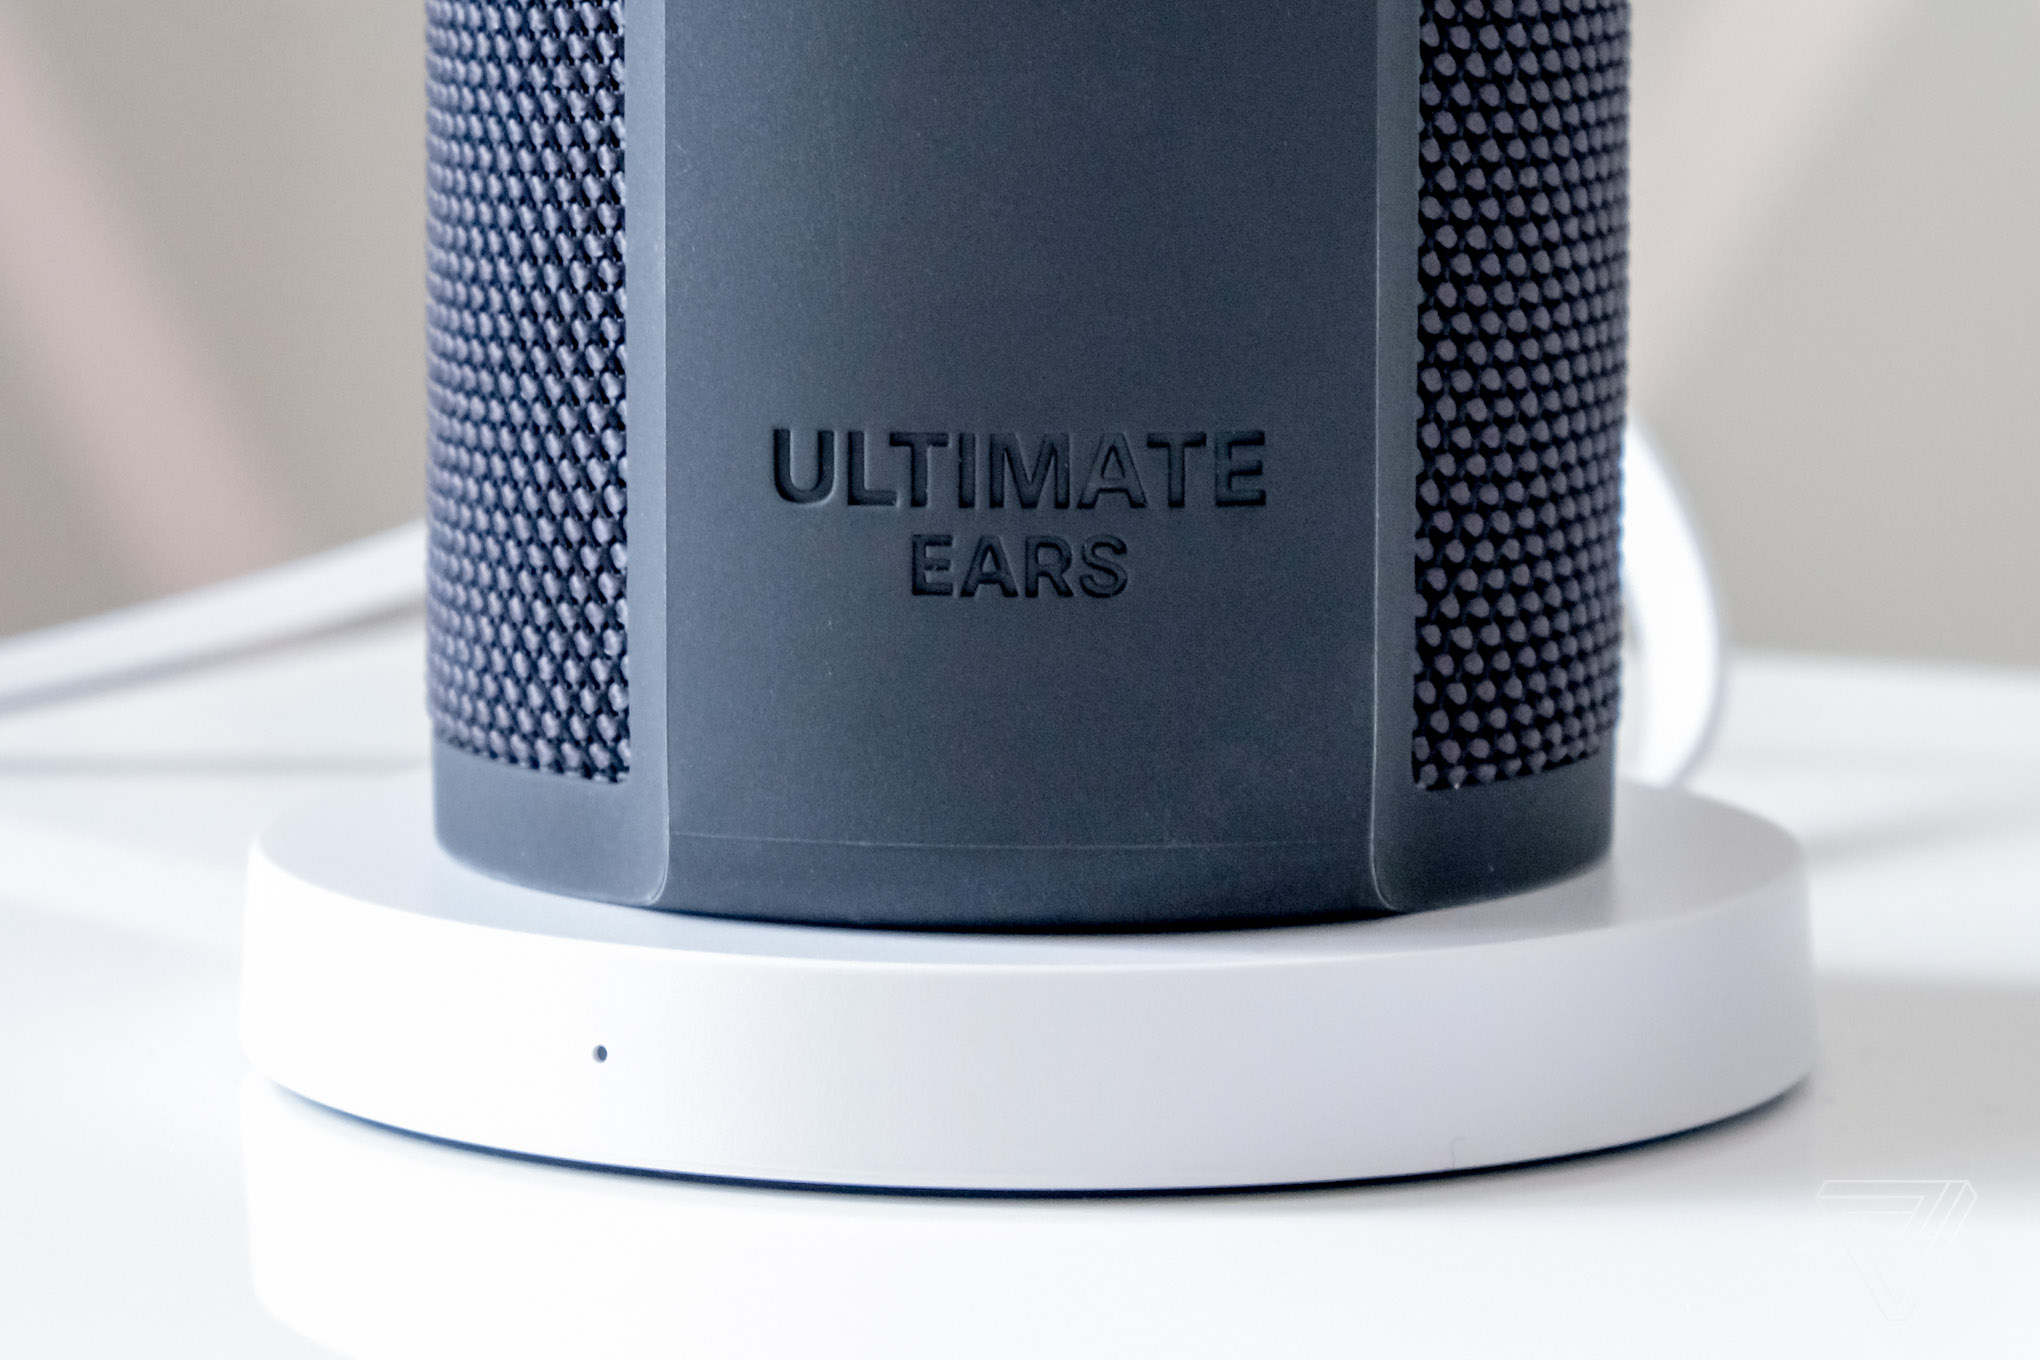 Ultimate Ears intros BLAST and MEGABLAST speakers with Amazon Alexa smarts